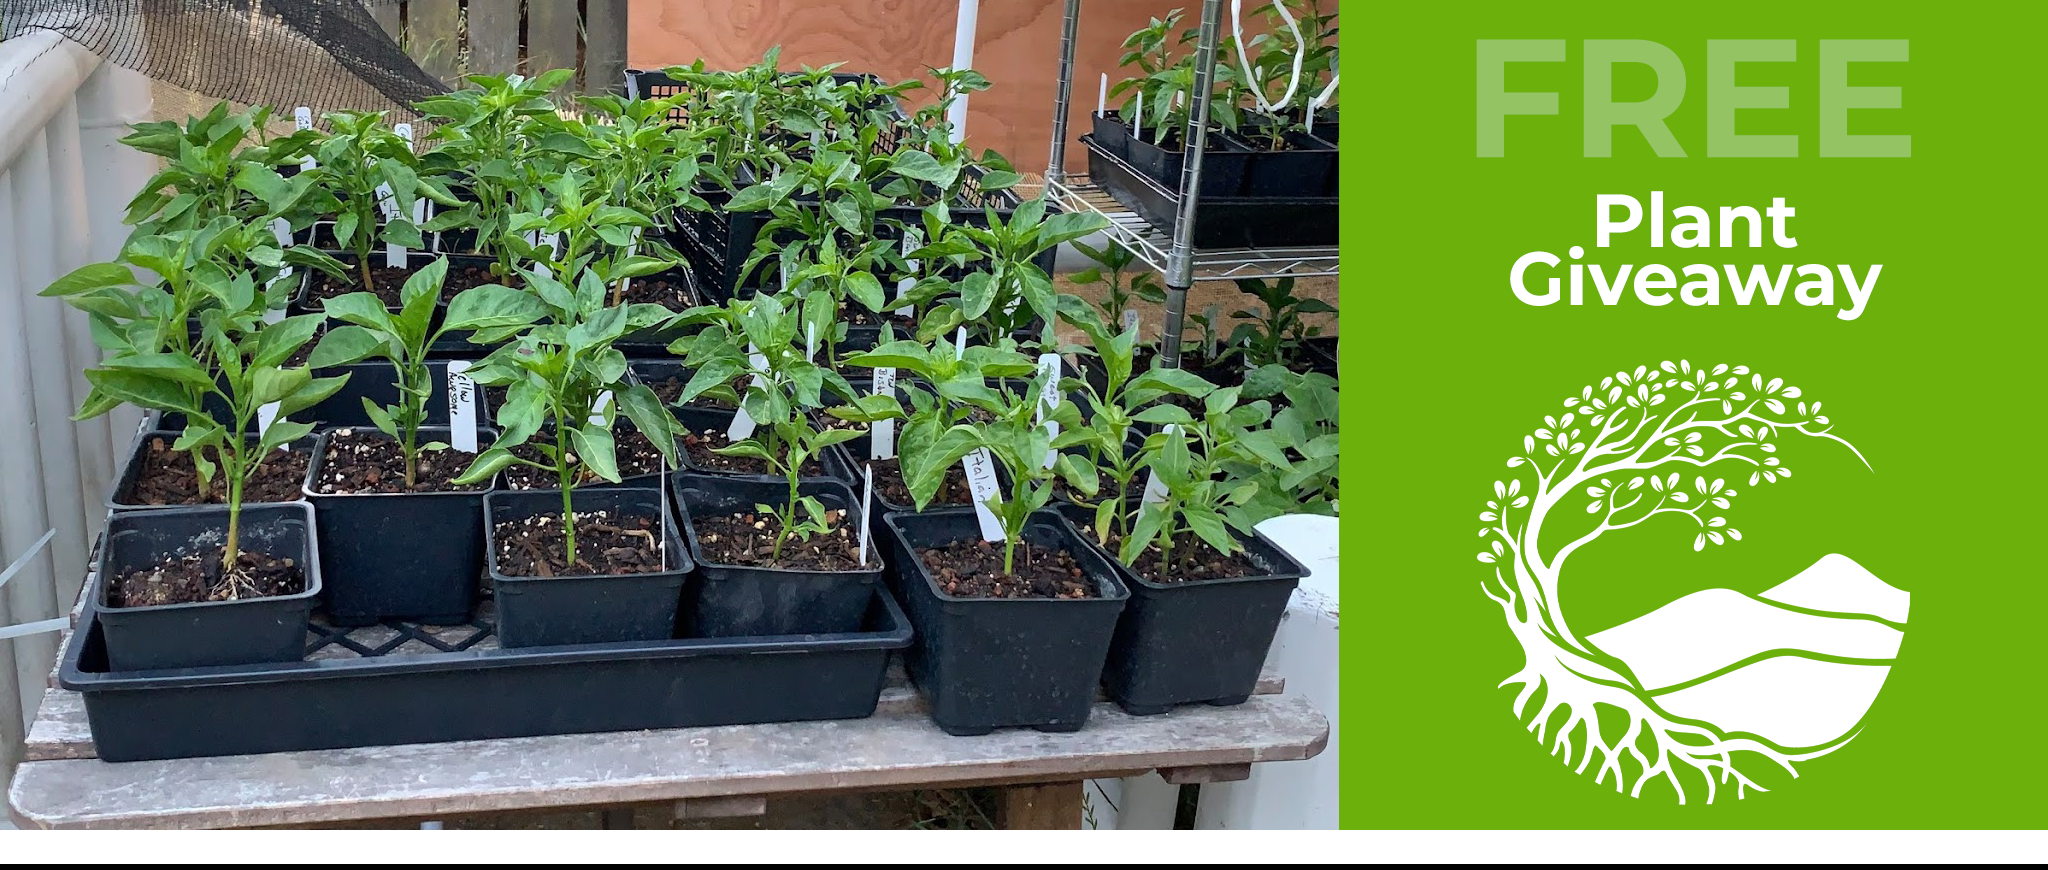 Castro Valley Plant Giveaway 2